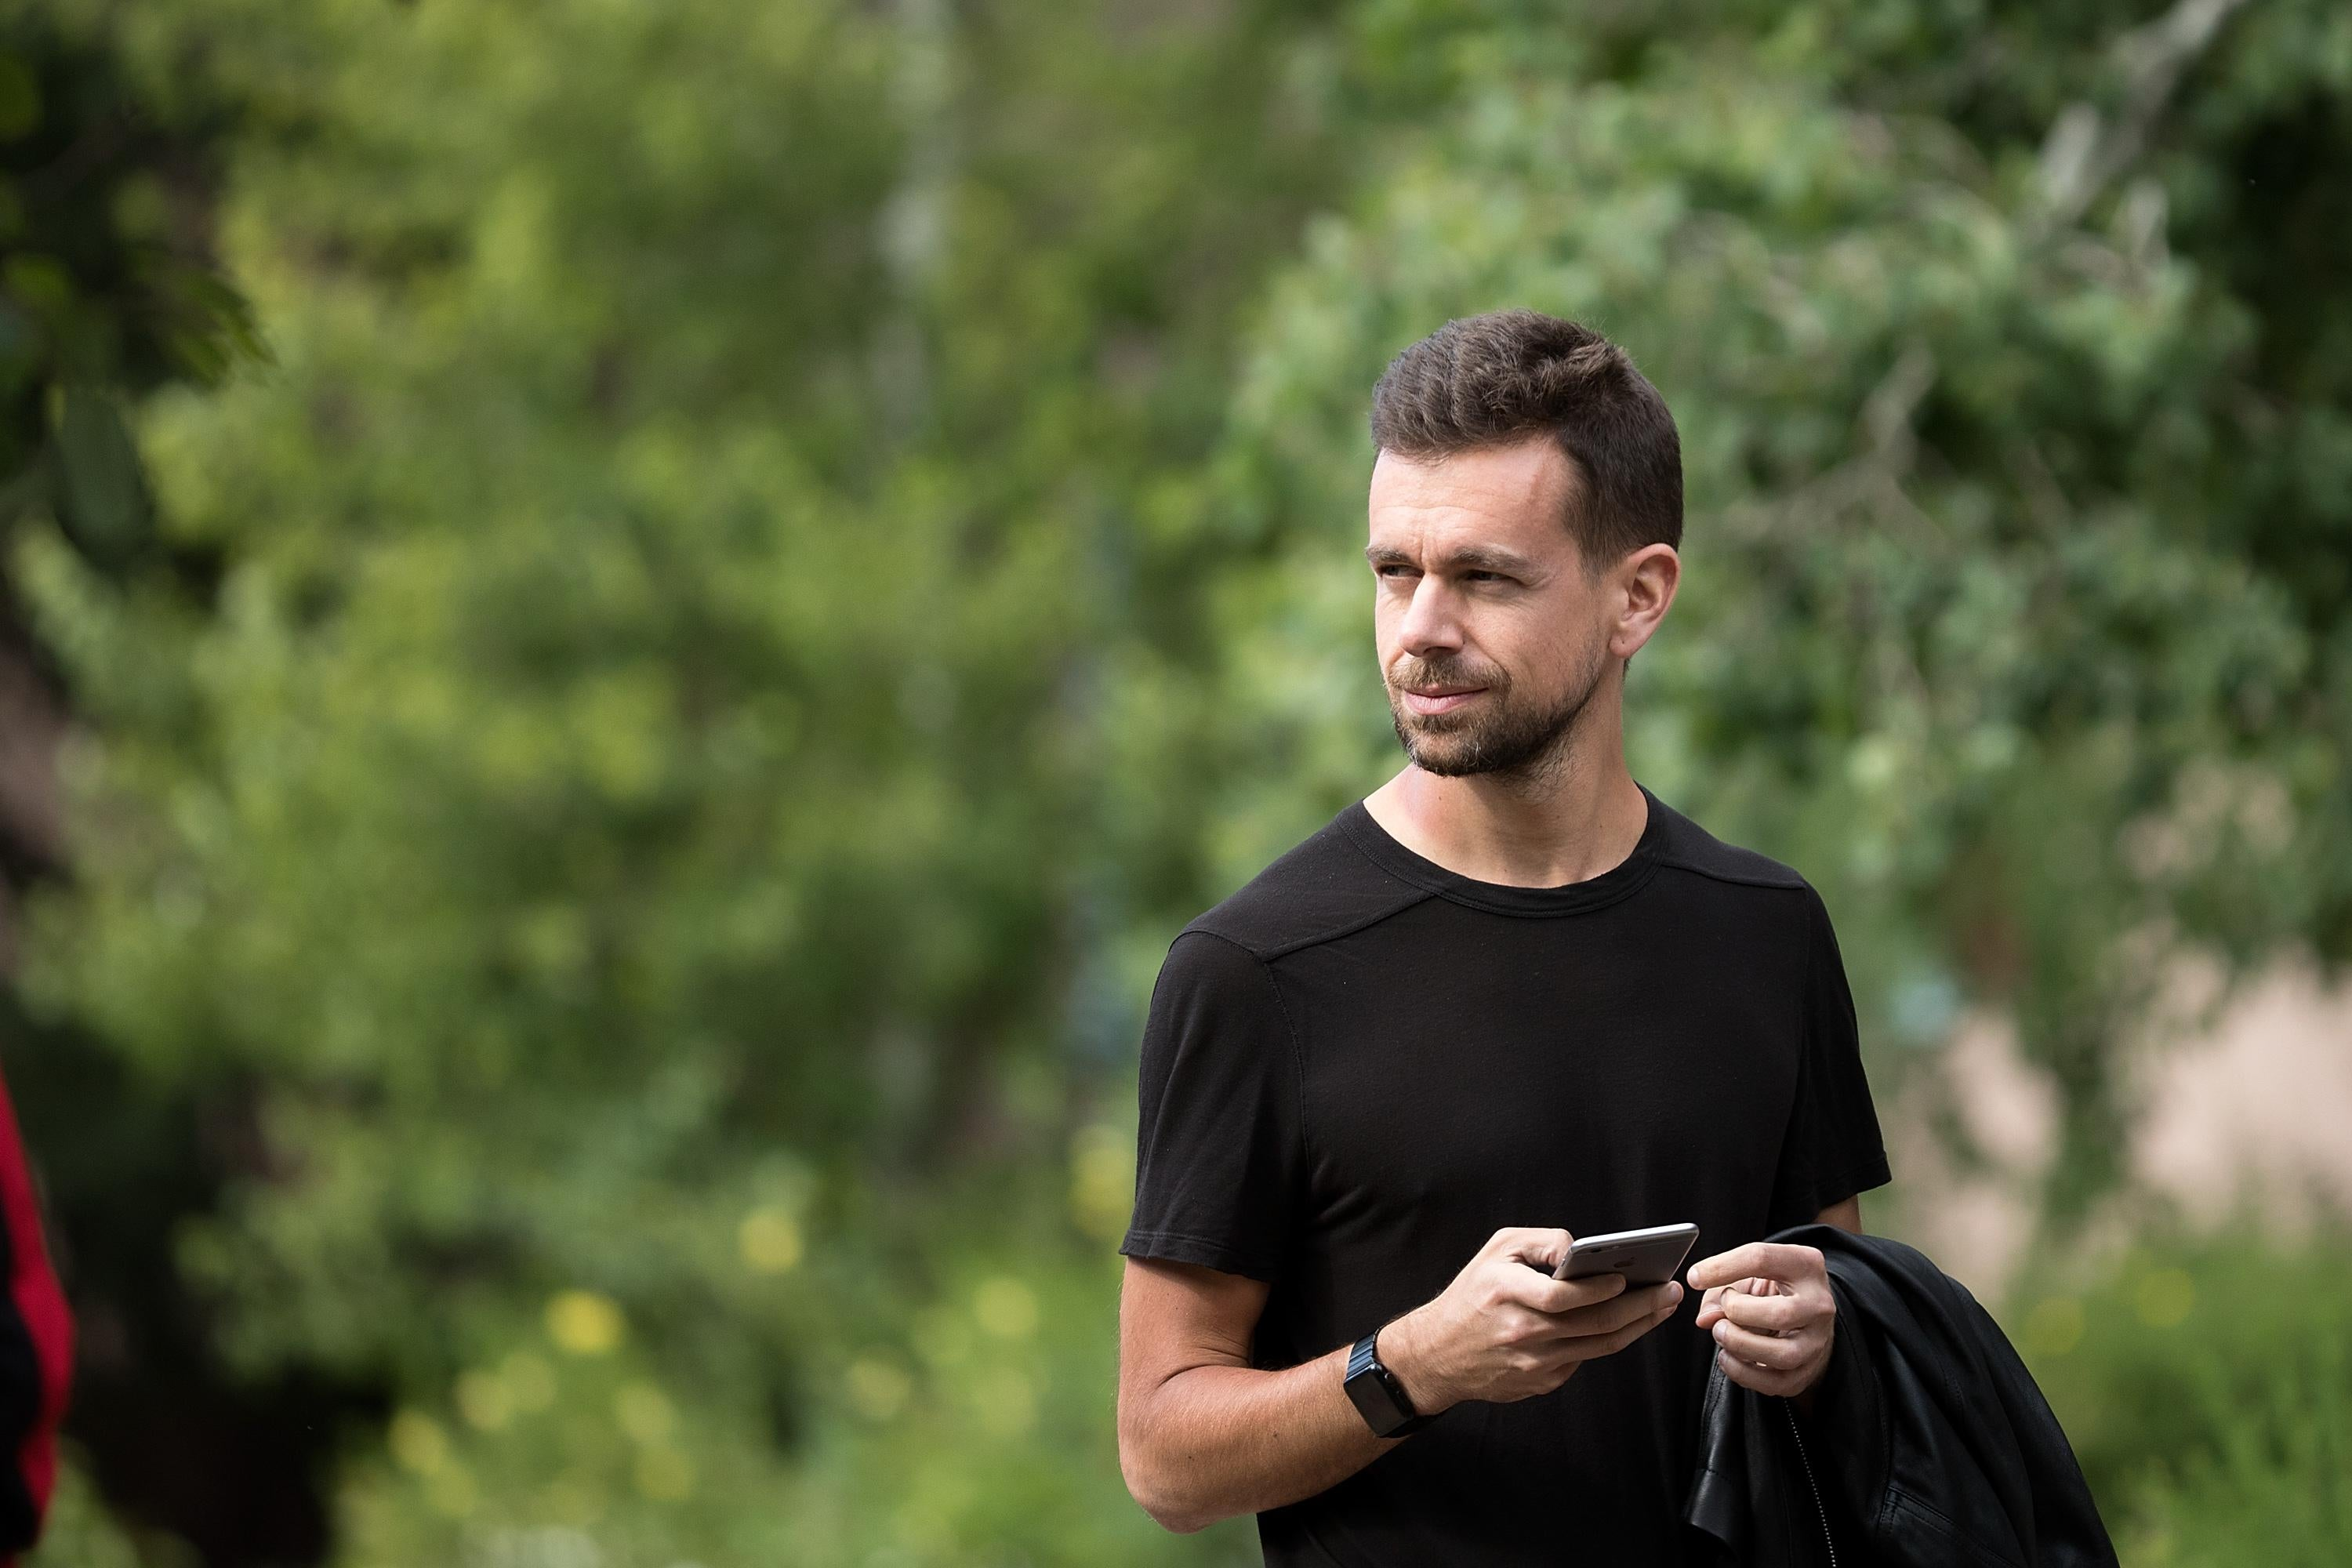 Jack Dorsey in front of some greenery, wearing all black, and holding his mobile phone.